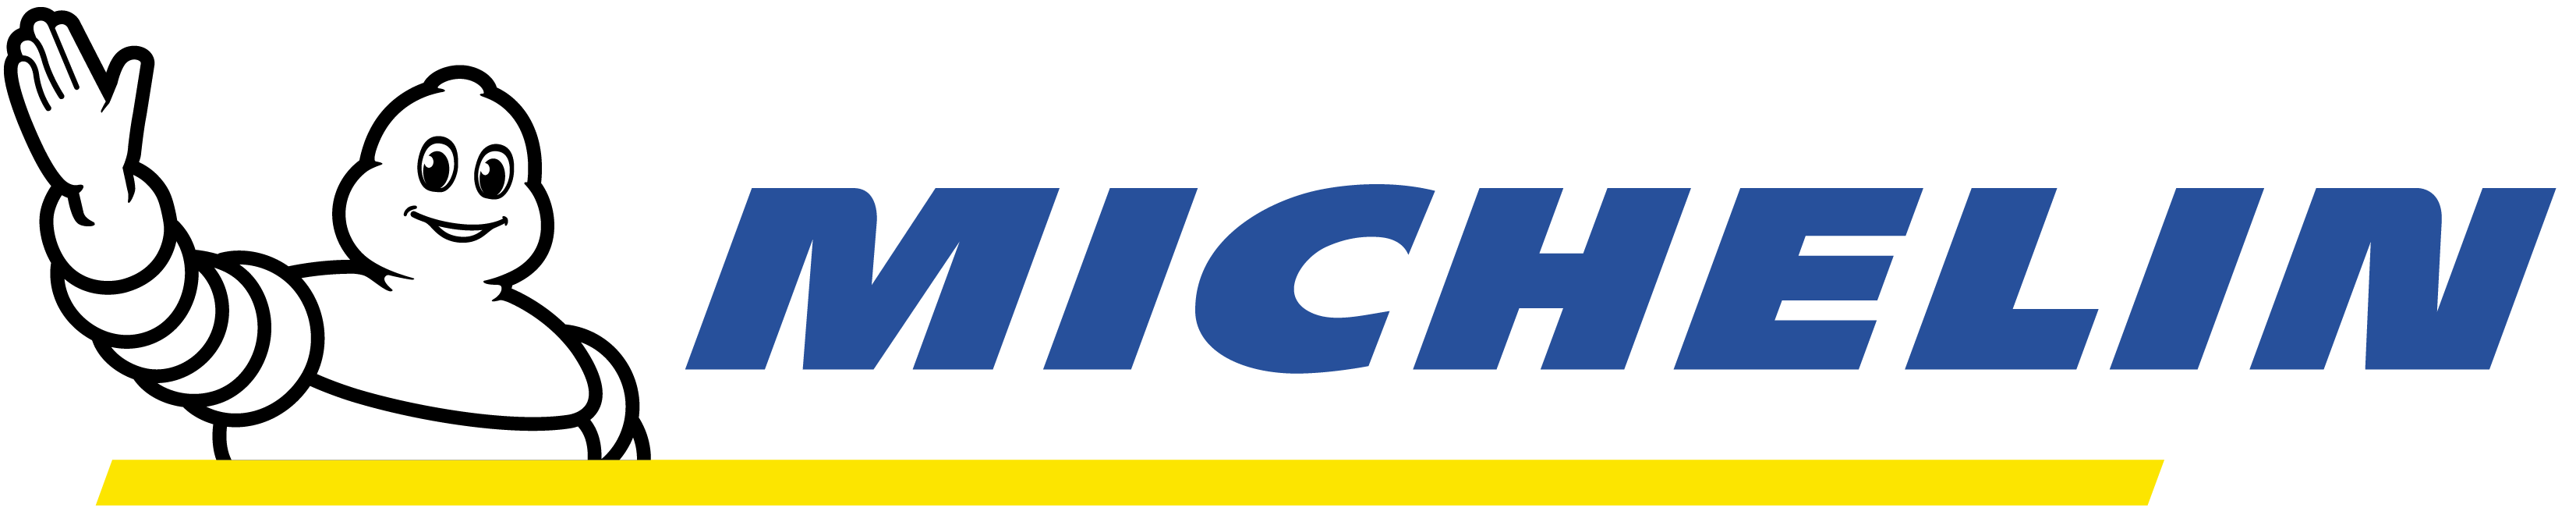 Michelin Corp Logo